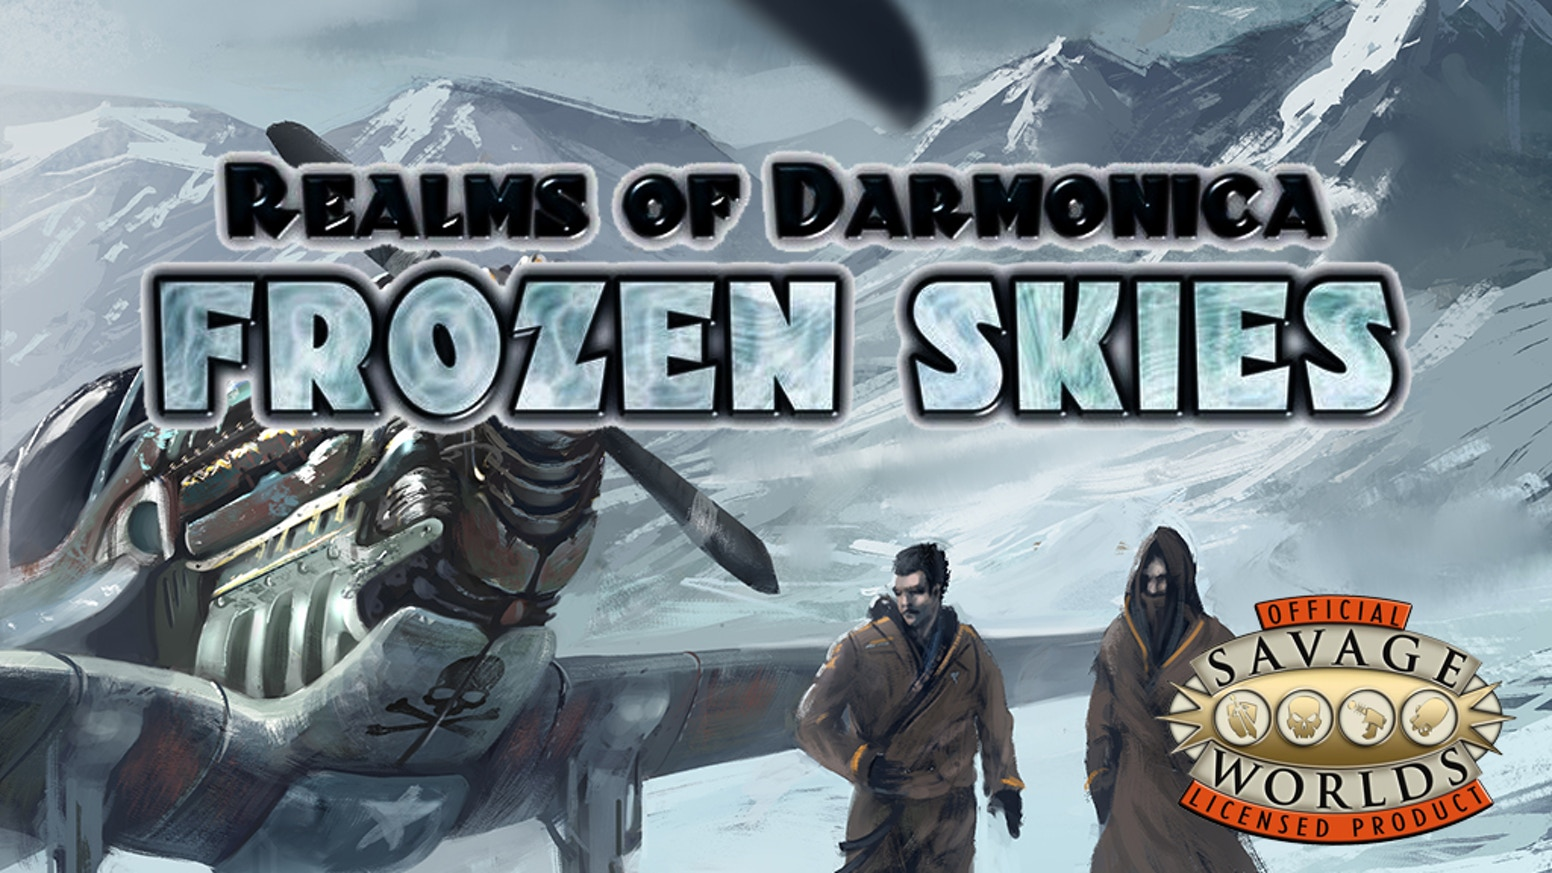 Frozen skies rpg for savage worlds by ian liddle kickstarter for Bureau 13 savage worlds